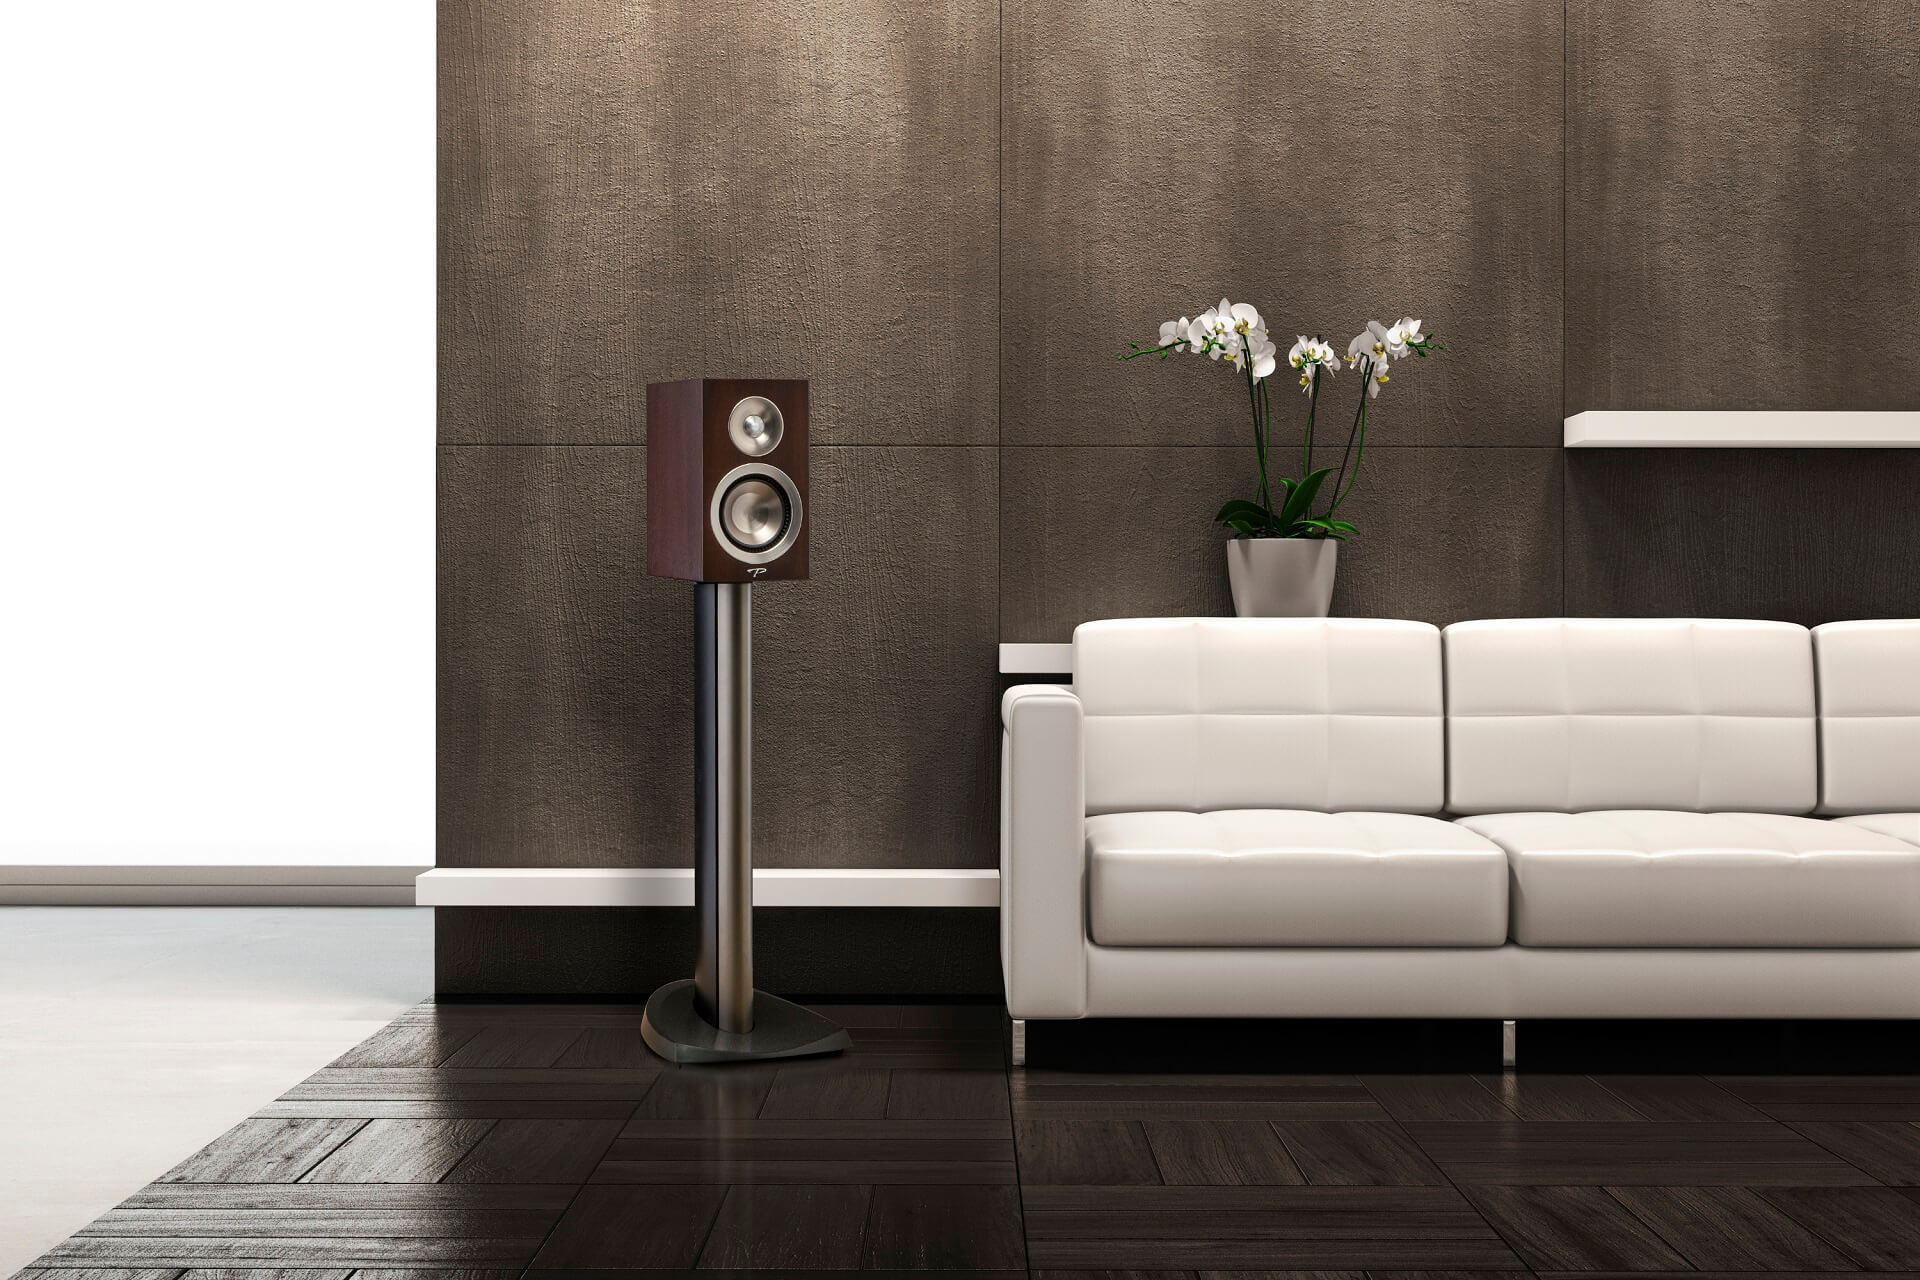 Surround Sound Audio Dubai